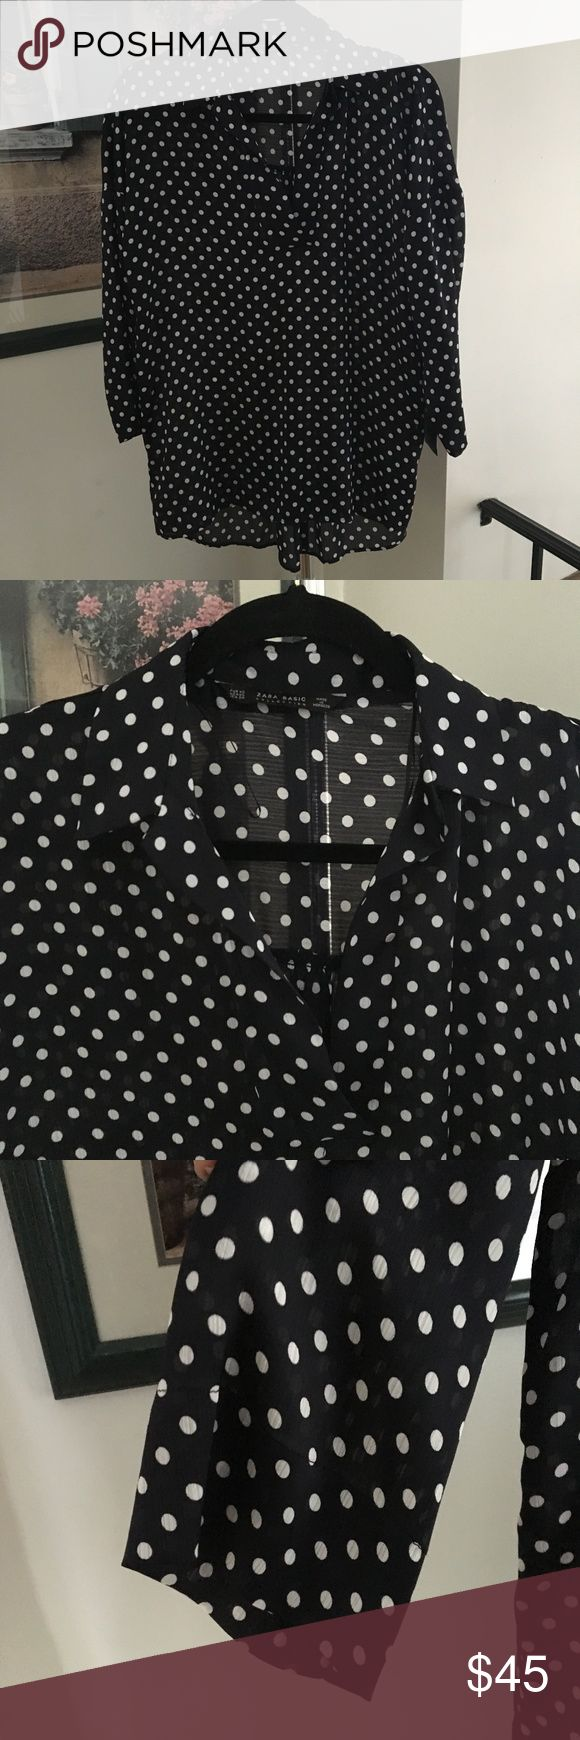 "Zara Spotted Smock Top Size XS Oversized blouse in sateen with a polka dot print, lapel collar and V-neck. Features long sleeves and asymmetric hem. Measurements: 31.5"" in length; armpit to armpit lying flat: 22"" Zara Tops Tunics"